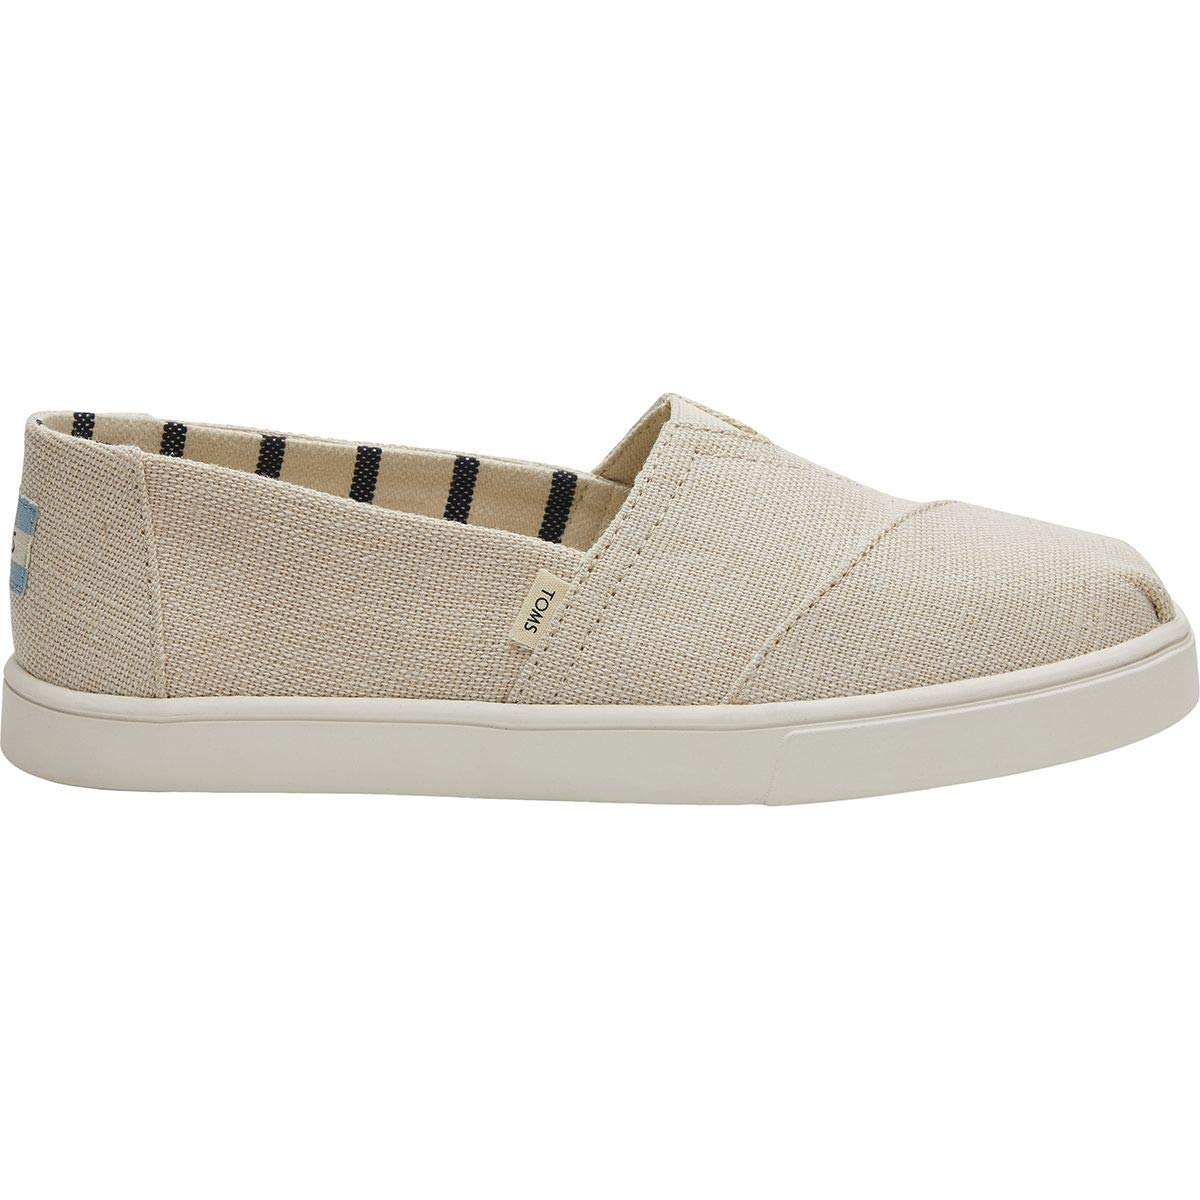 1e52e24a3e51a TOMS Women's Alpargata Espadrille, Size: 6.5 B(M) US, Color: Natural  Heritage Can